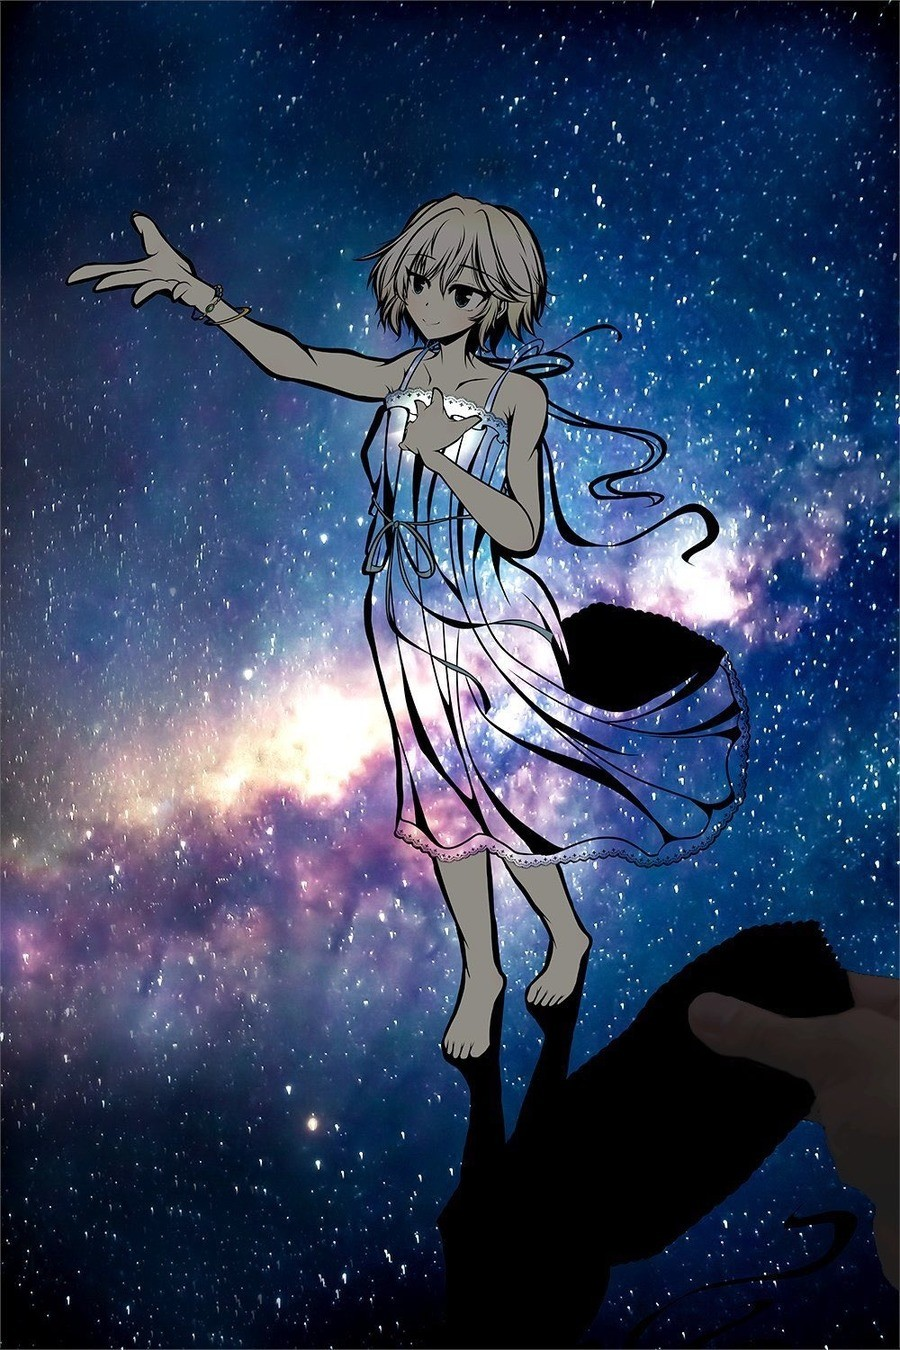 stars. by kotetsu_of lets have a good day join list: LetsHaveAGoodDay (536 subs)Mention History.. berry nice and cute